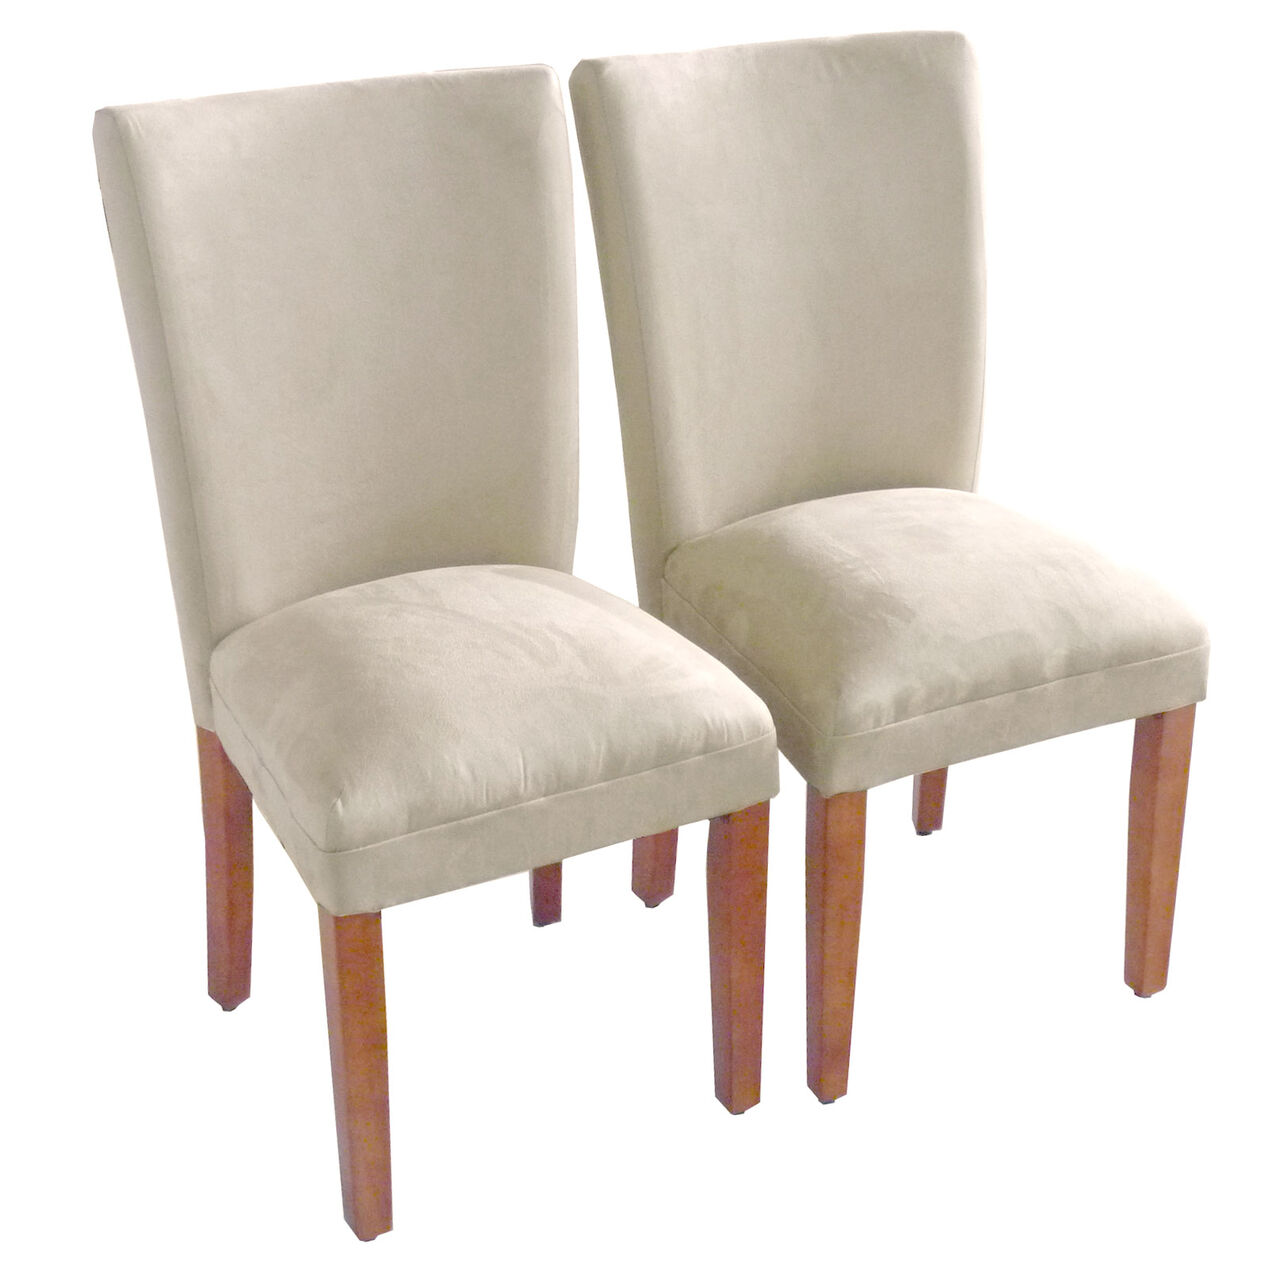 Taupe Dining Room Chairs Dining Chairs Dining Room Chair Collection At Home Stores